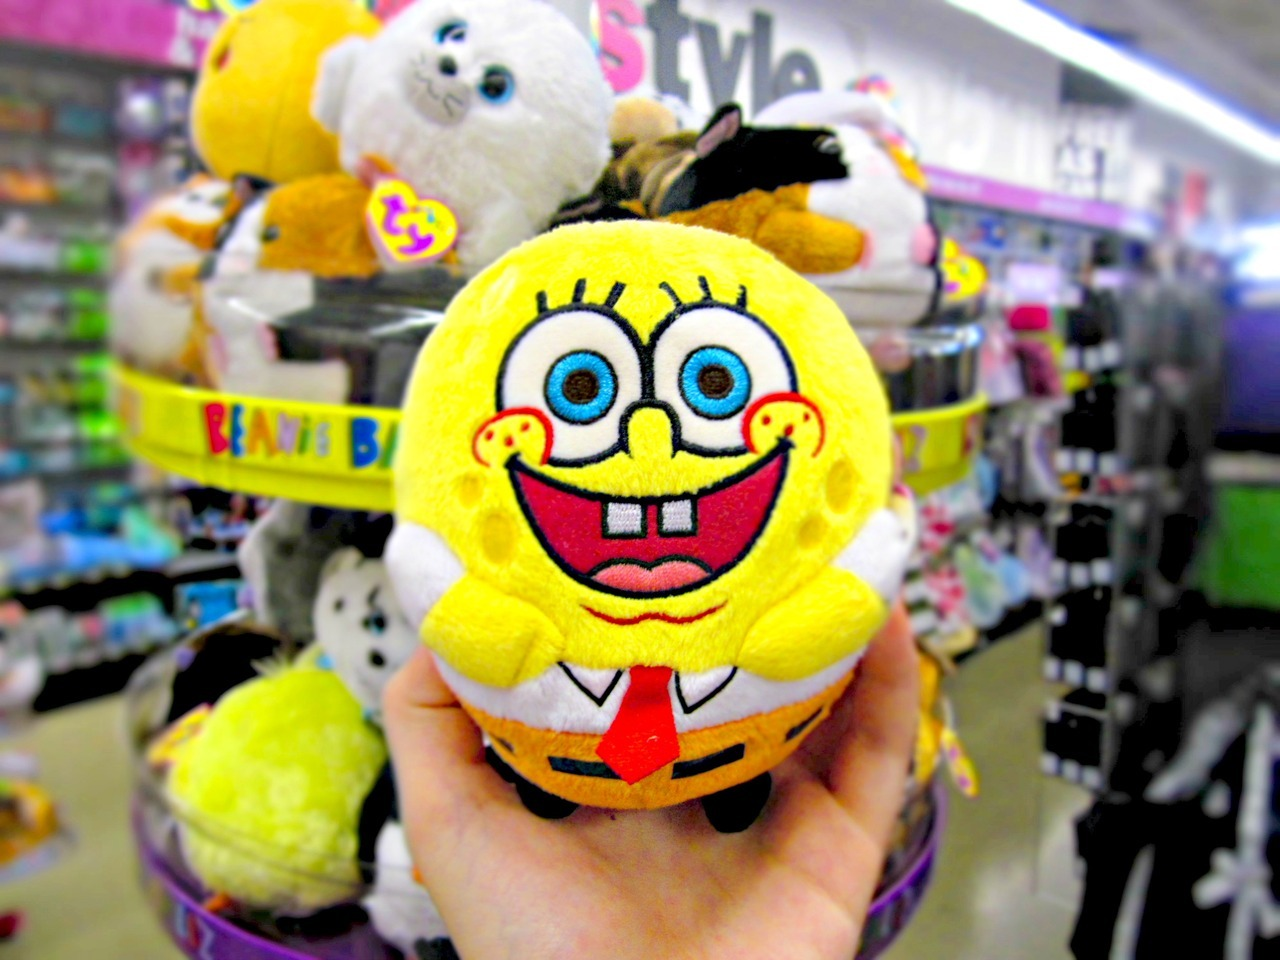 3ternity:  spongebob has become spongeball